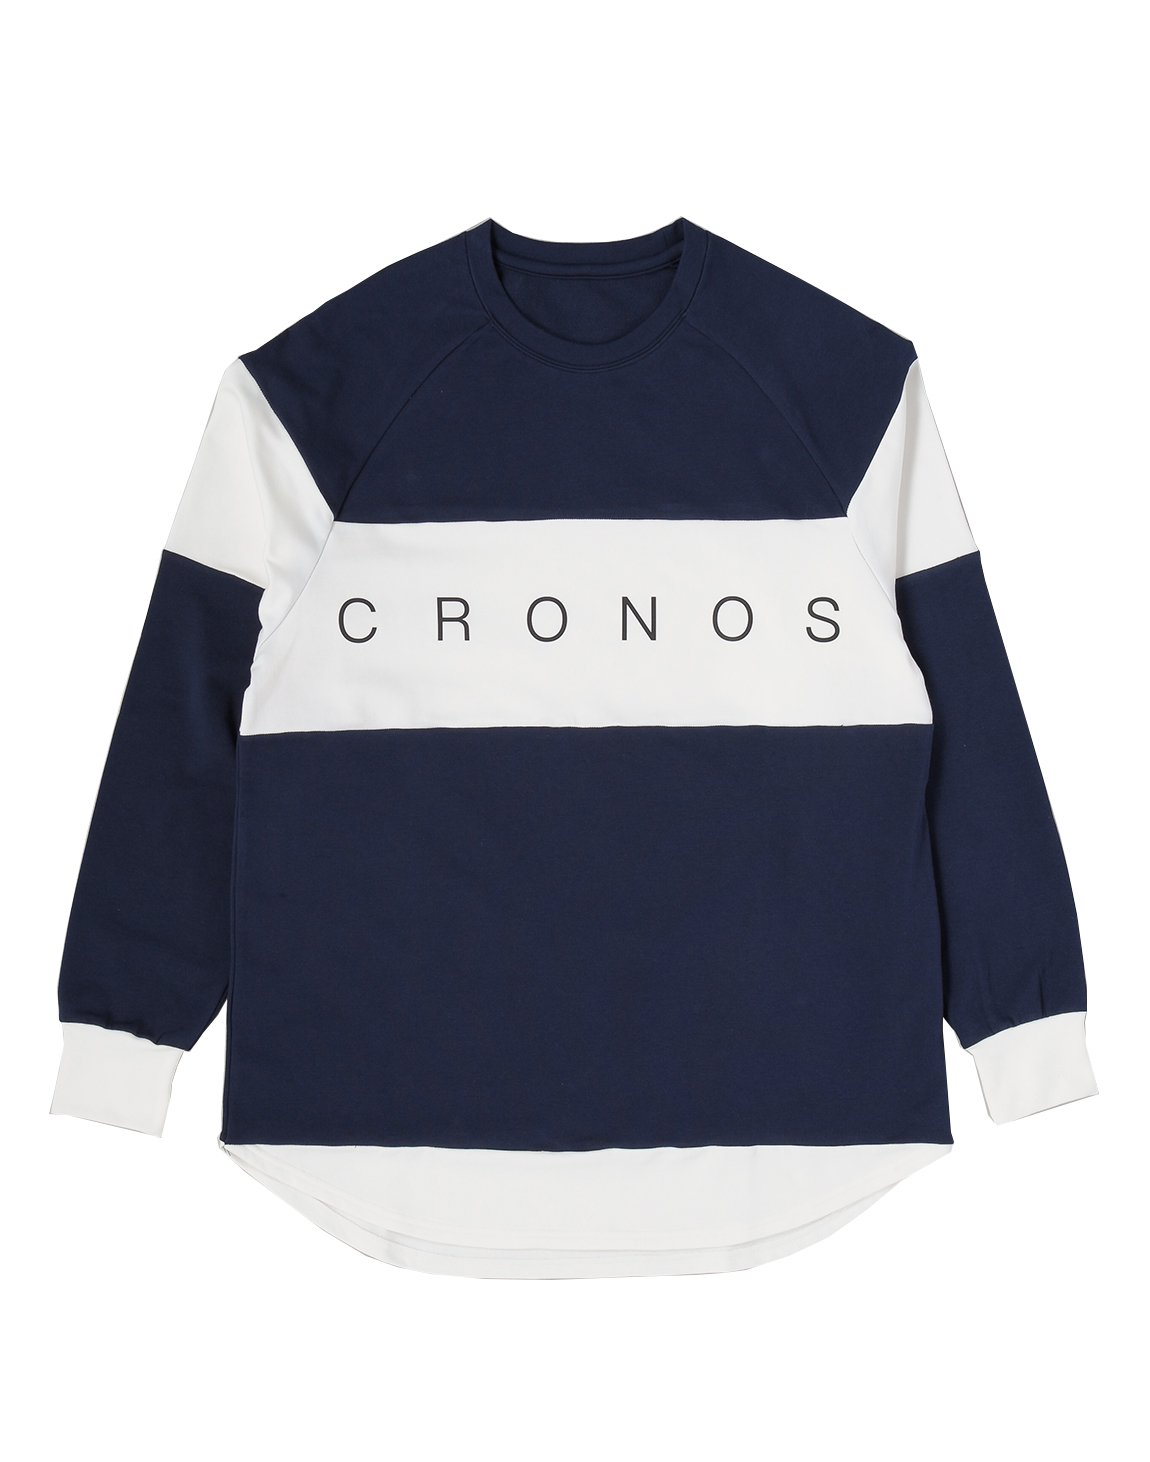 <img class='new_mark_img1' src='https://img.shop-pro.jp/img/new/icons1.gif' style='border:none;display:inline;margin:0px;padding:0px;width:auto;' />CRONOS Bi-COLOR  LONG SLEEVE【NAVY】